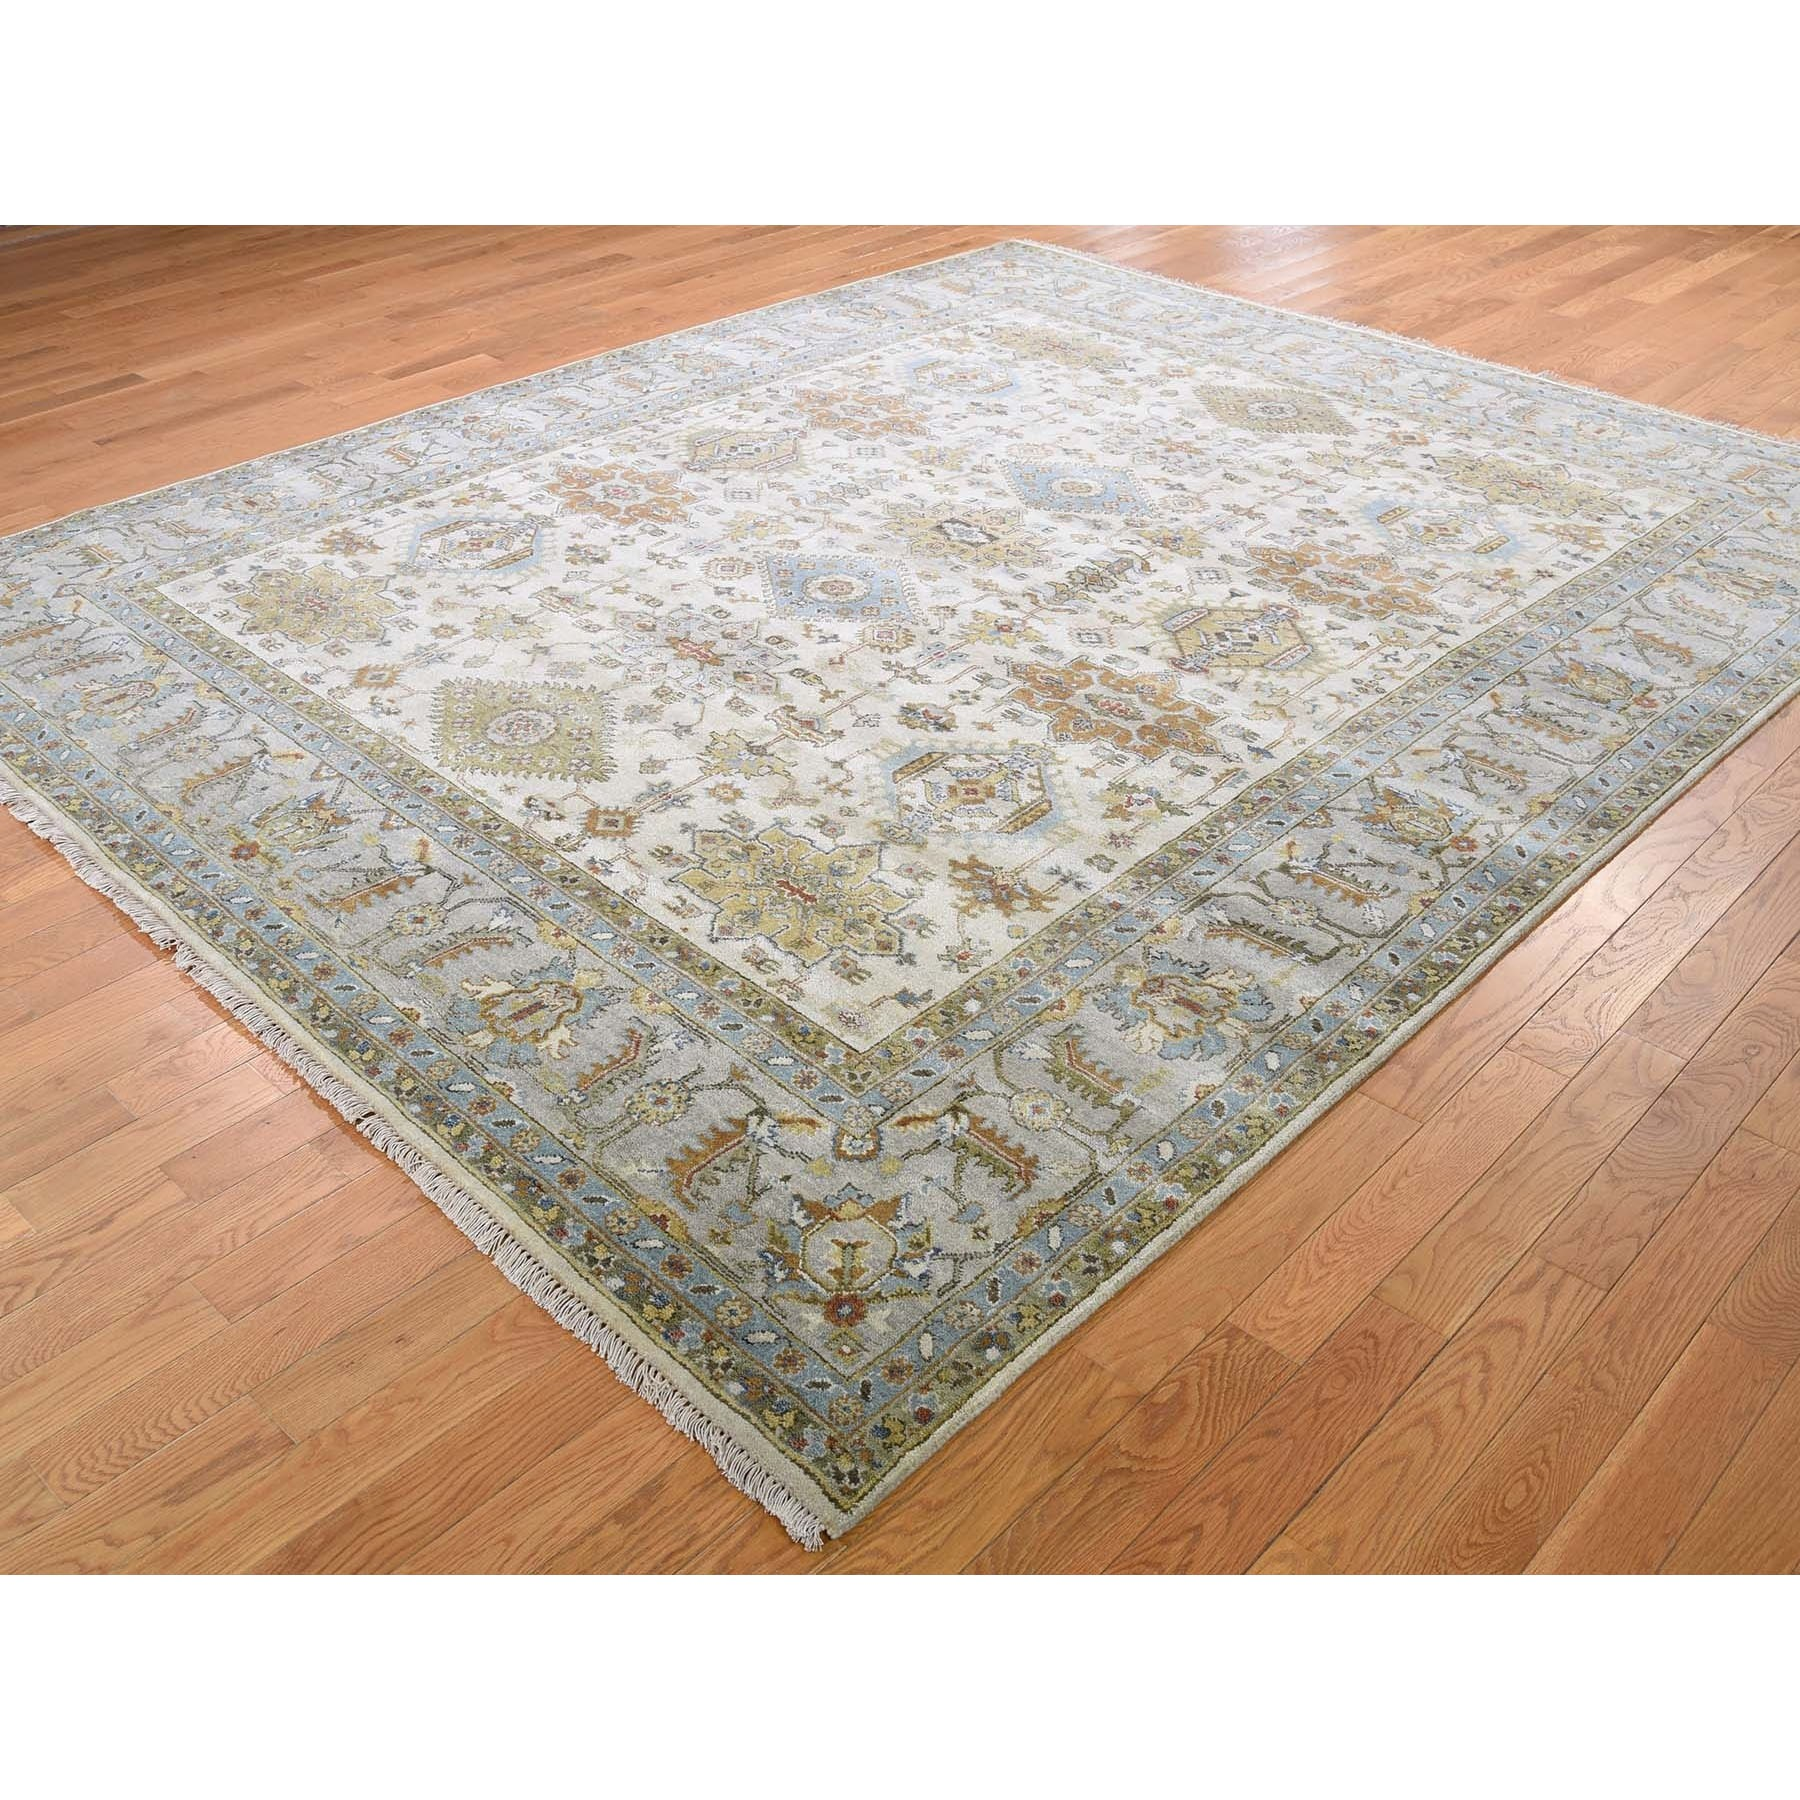 """8'2""""x10'2"""" Ivory Karajeh Design Pure Wool Hand Knotted Oriental Rug"""